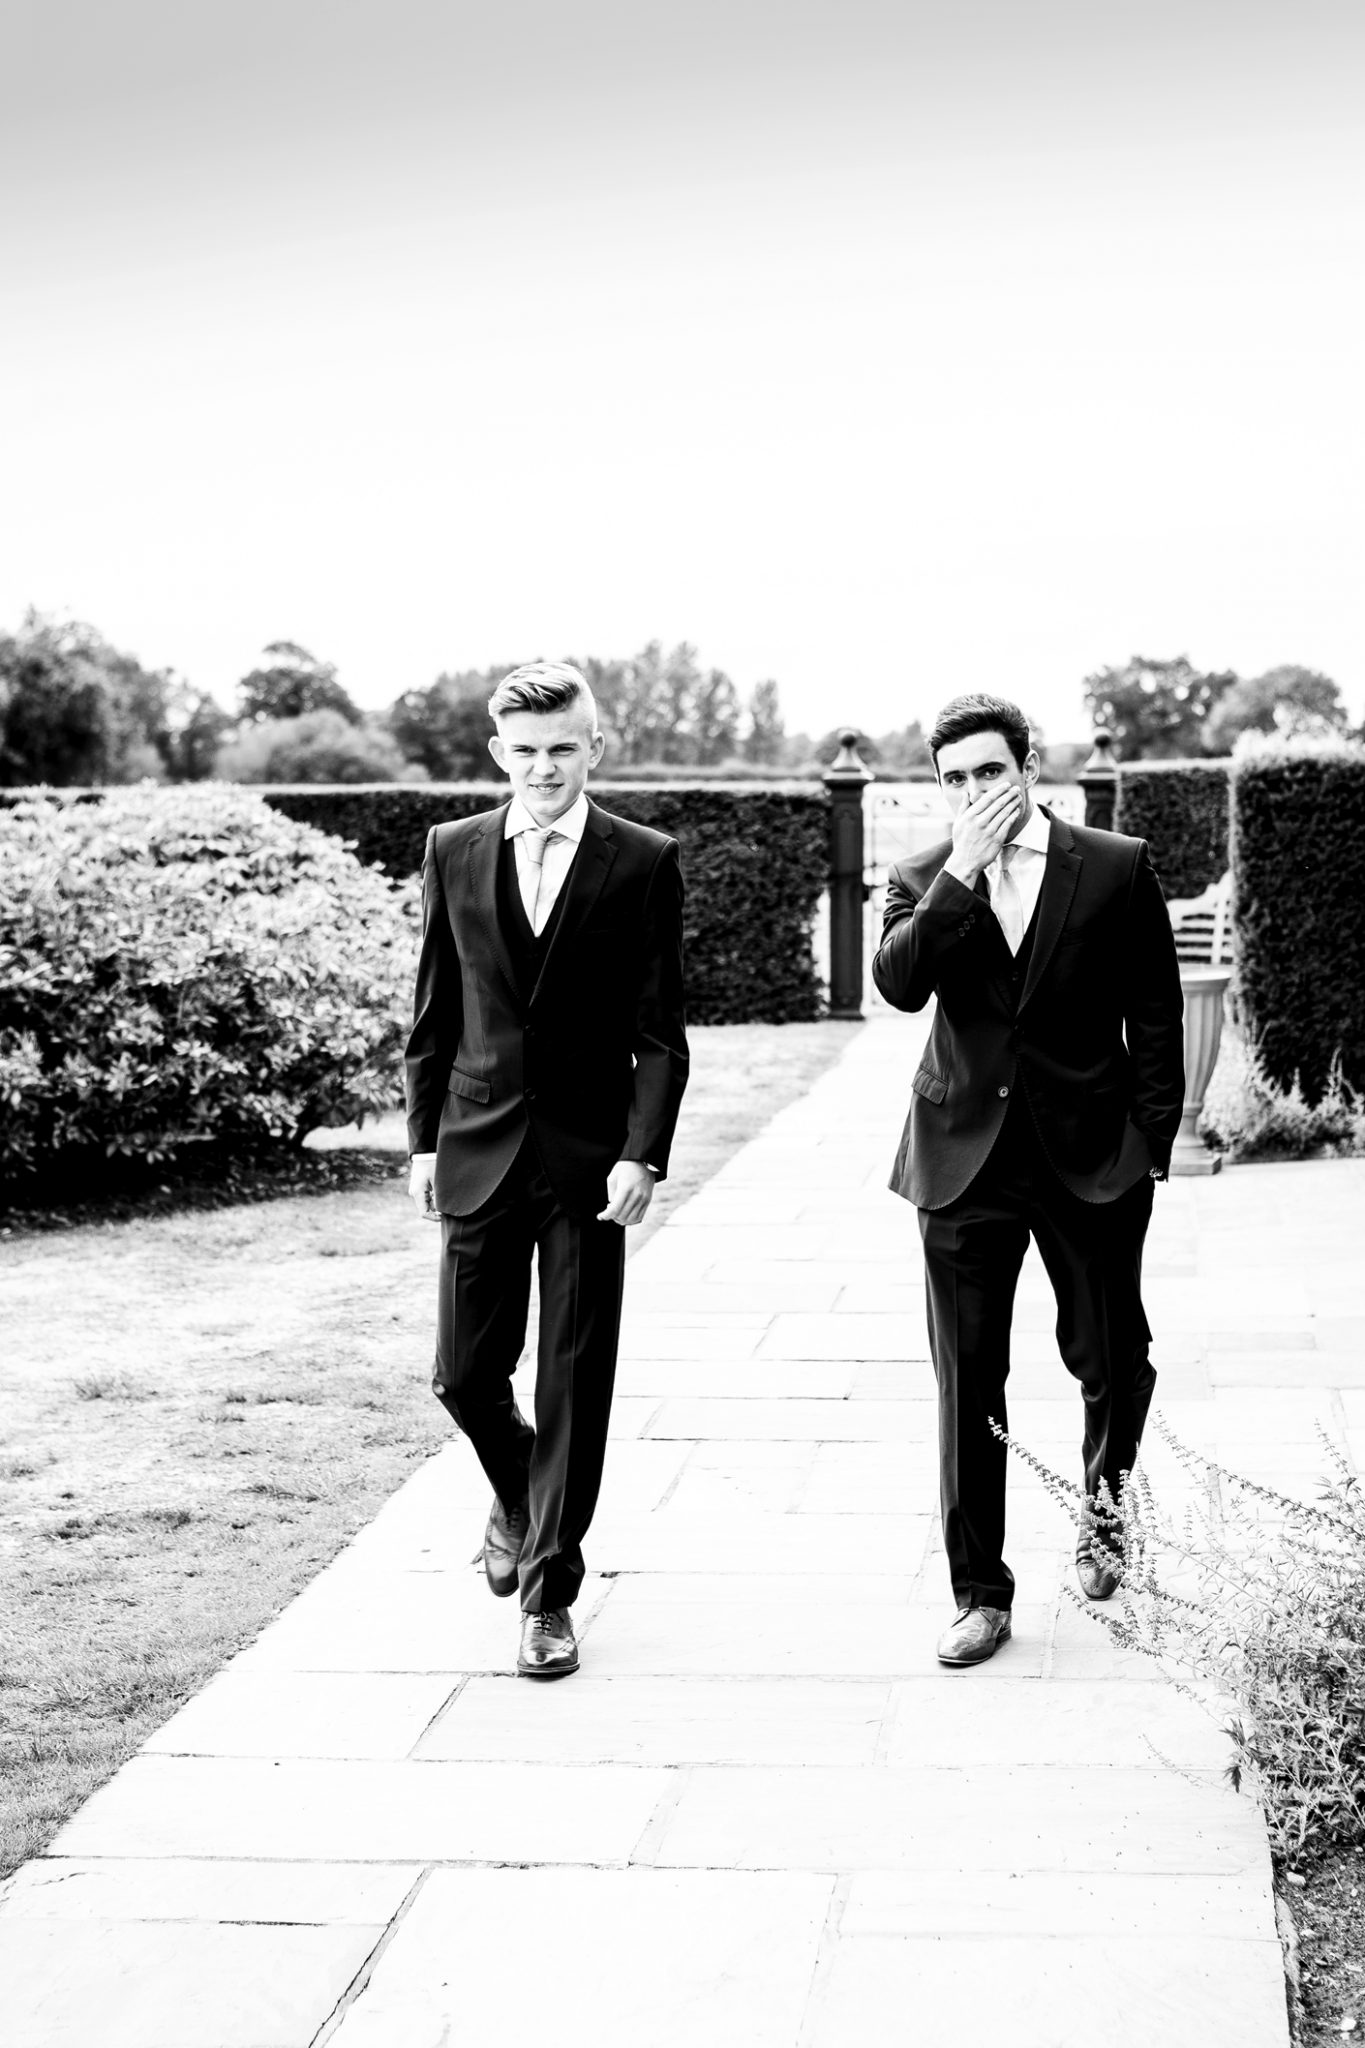 wedding-photography-of-the-ushers-arriving-at-merrydale-manor-knutsford-cheshire